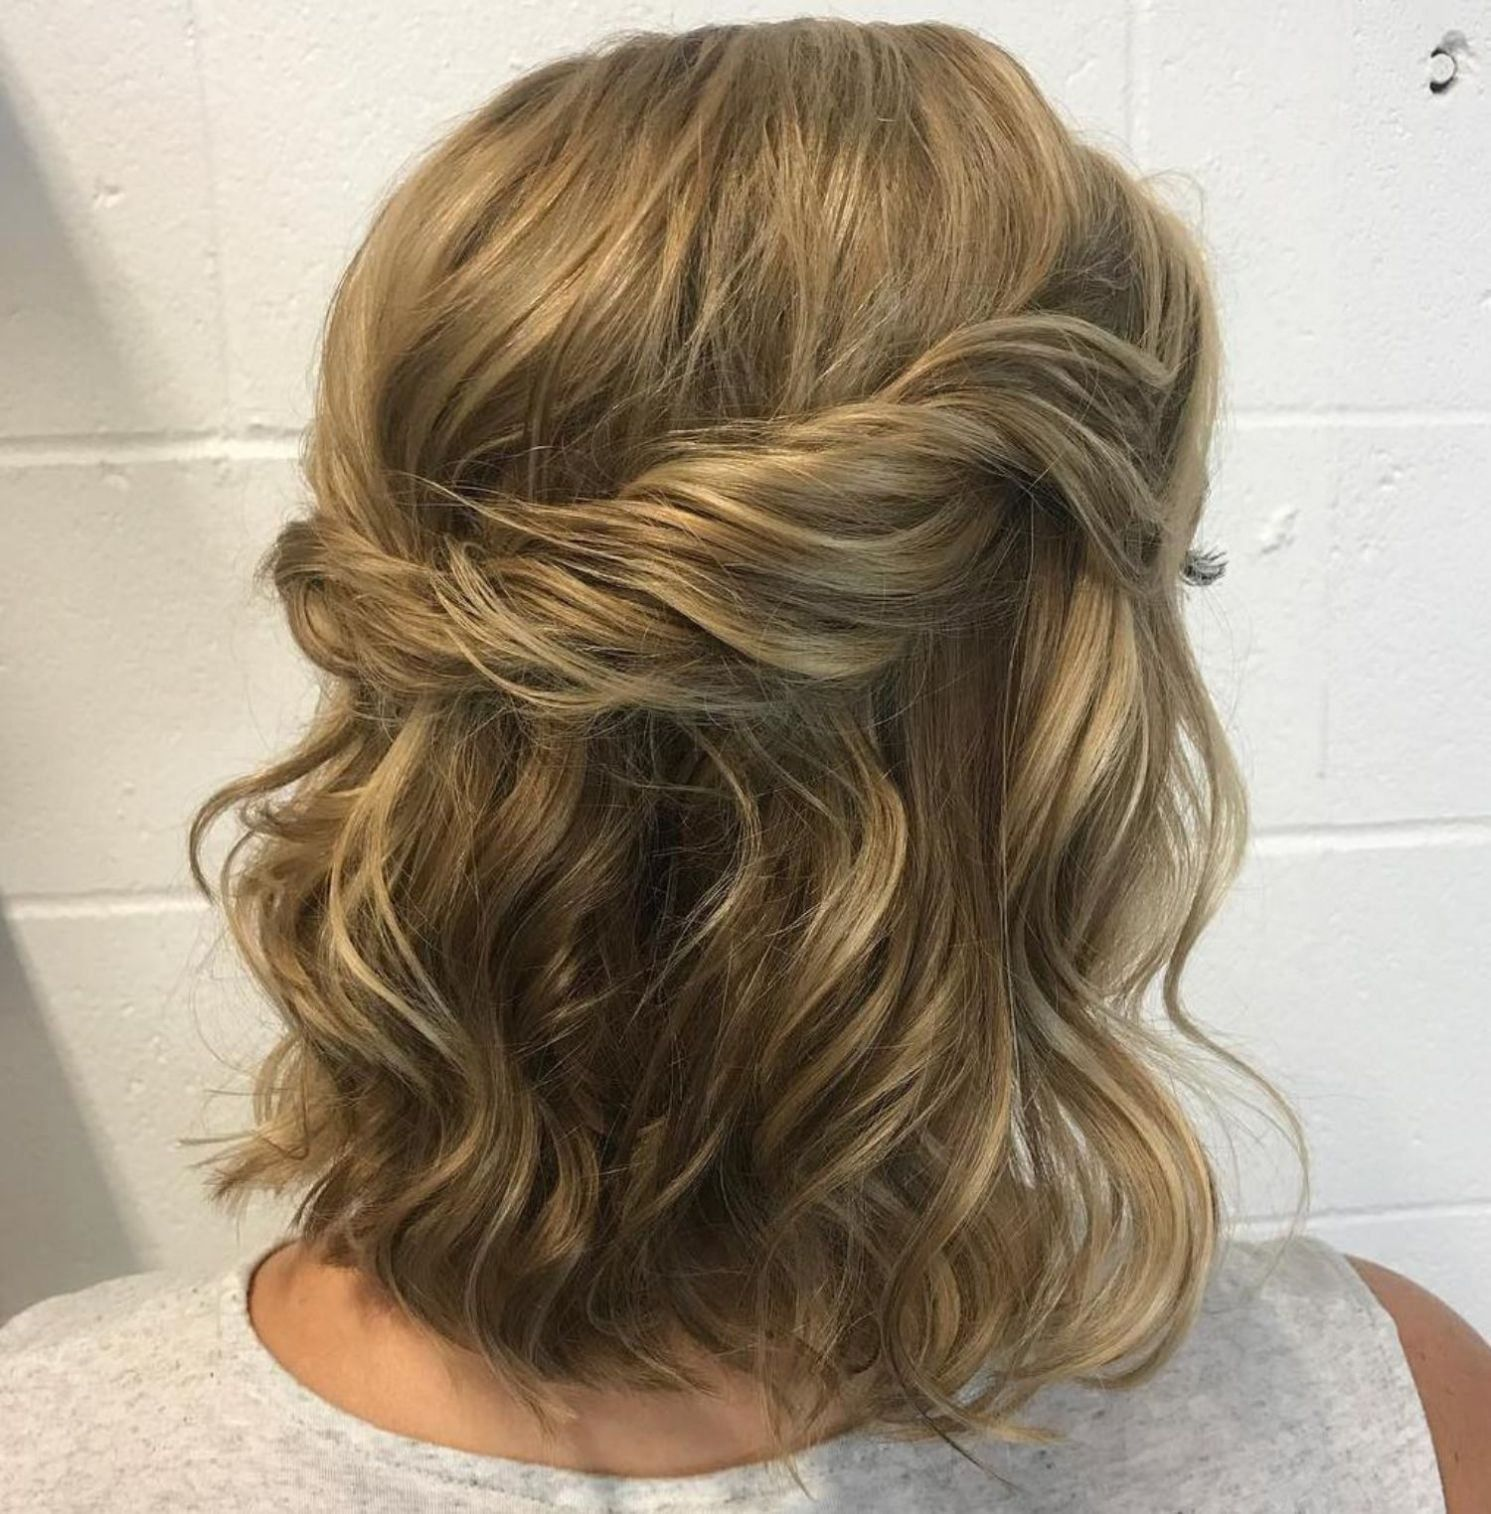 Pin On Prom Hairstyles Half Up Half Down